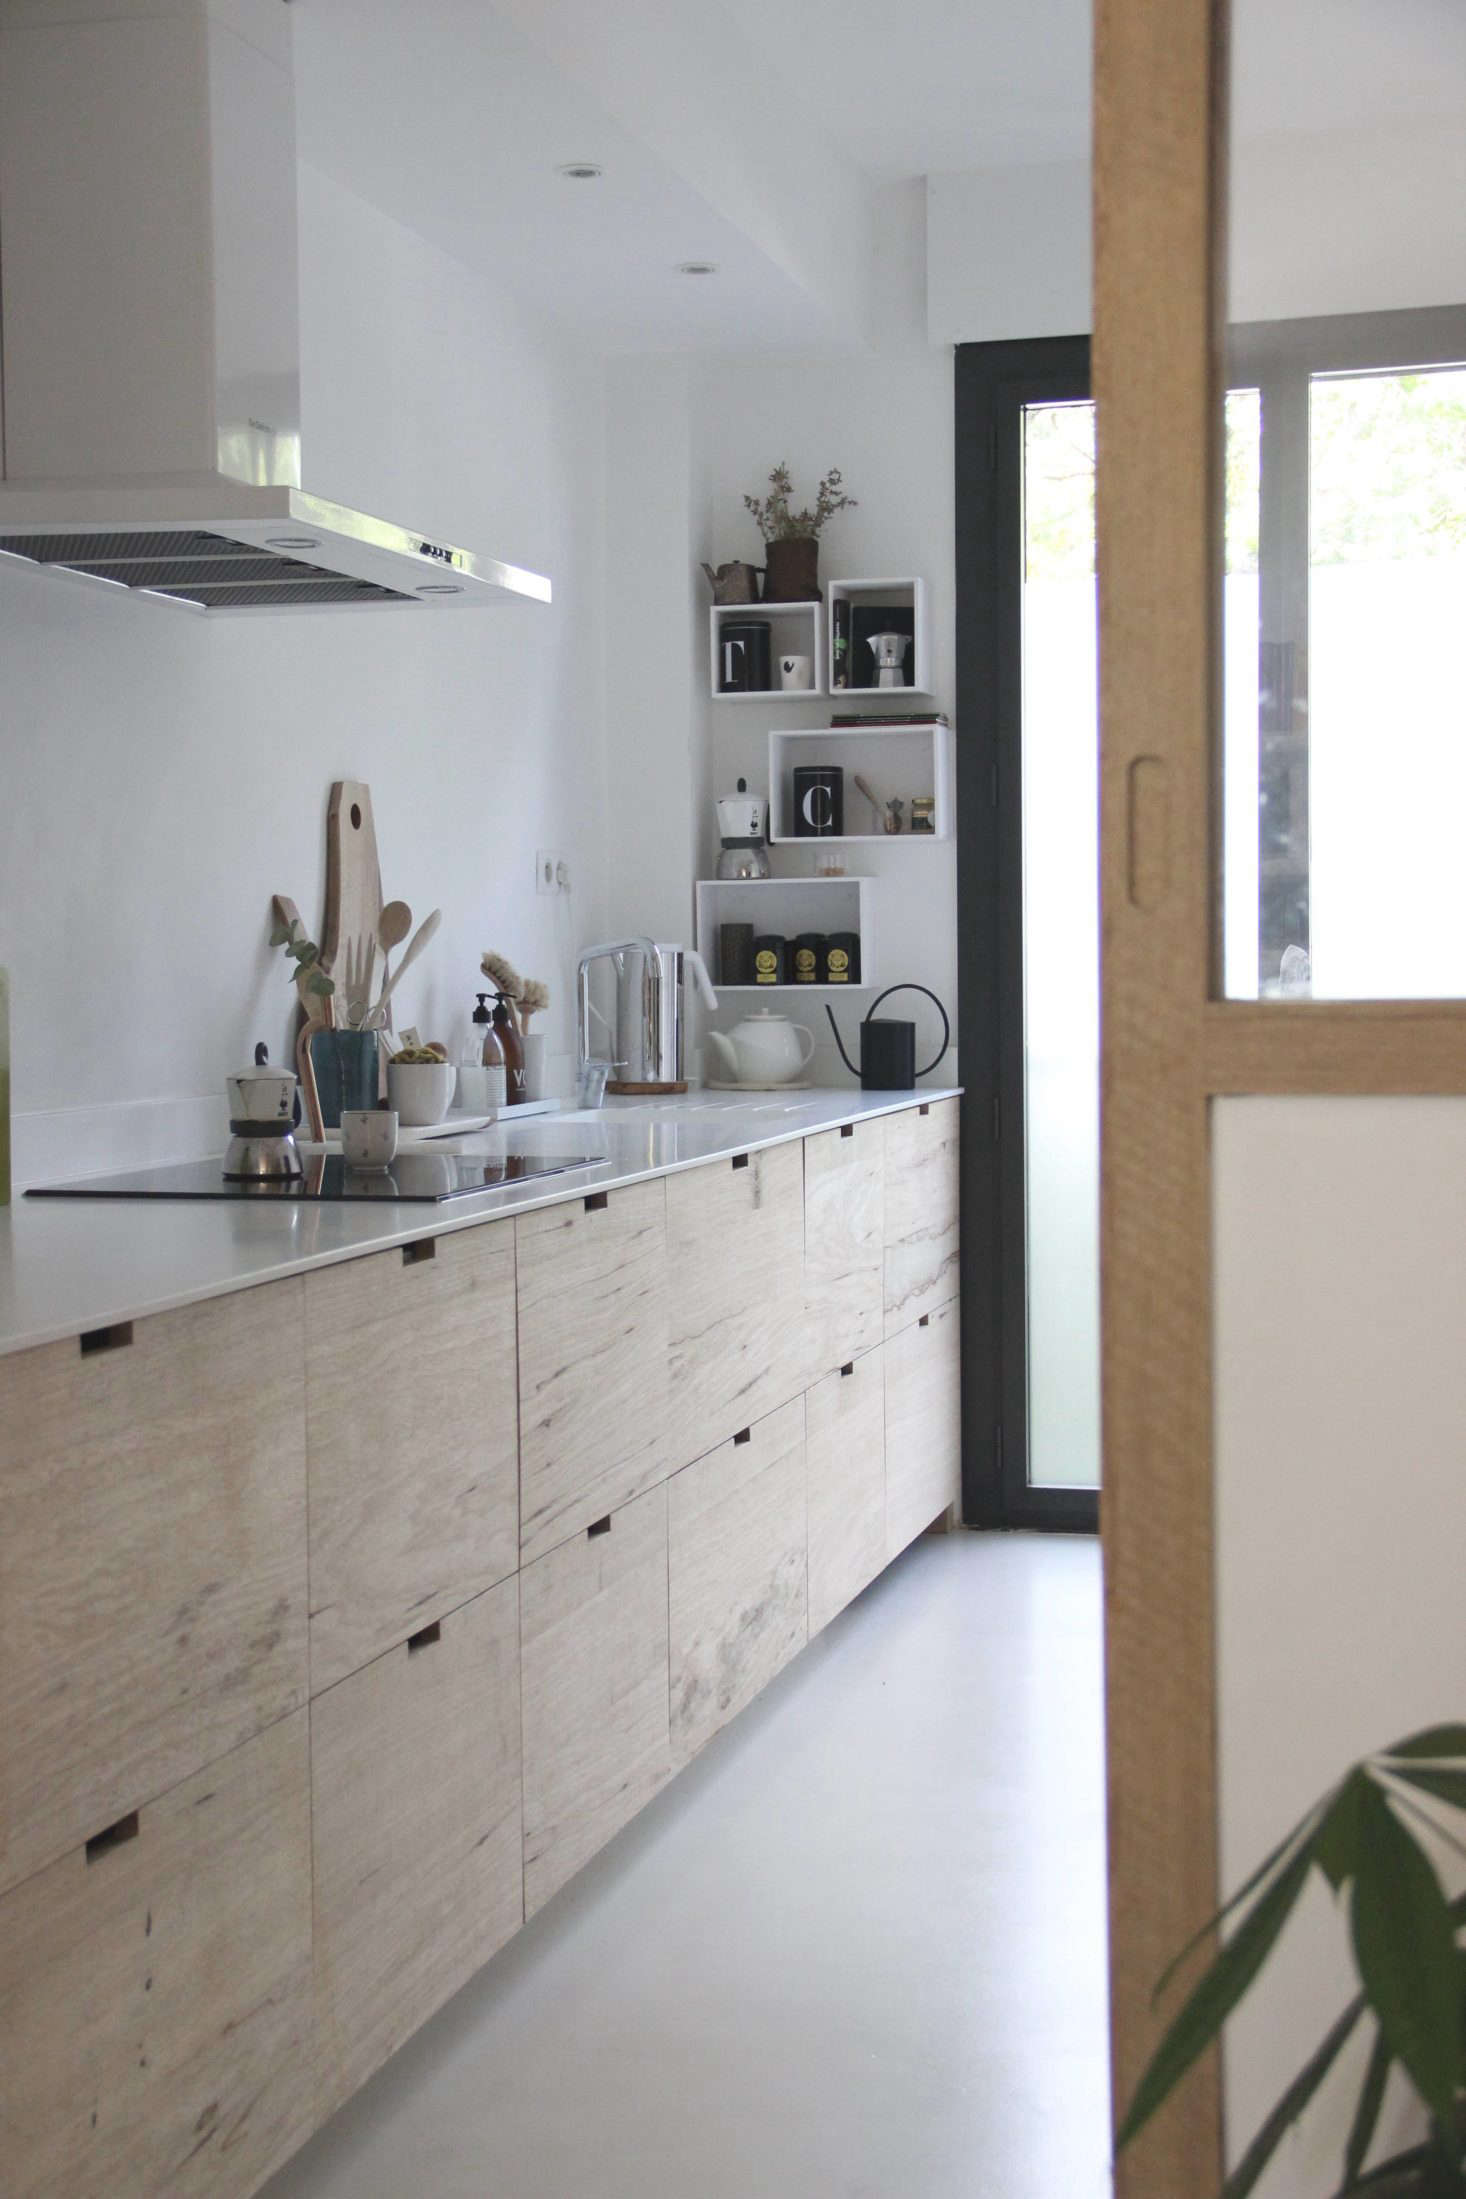 Ikea Kitchens 2017 In Praise Of Ikea 20 Ikea Kitchens From The Remodelista Archives